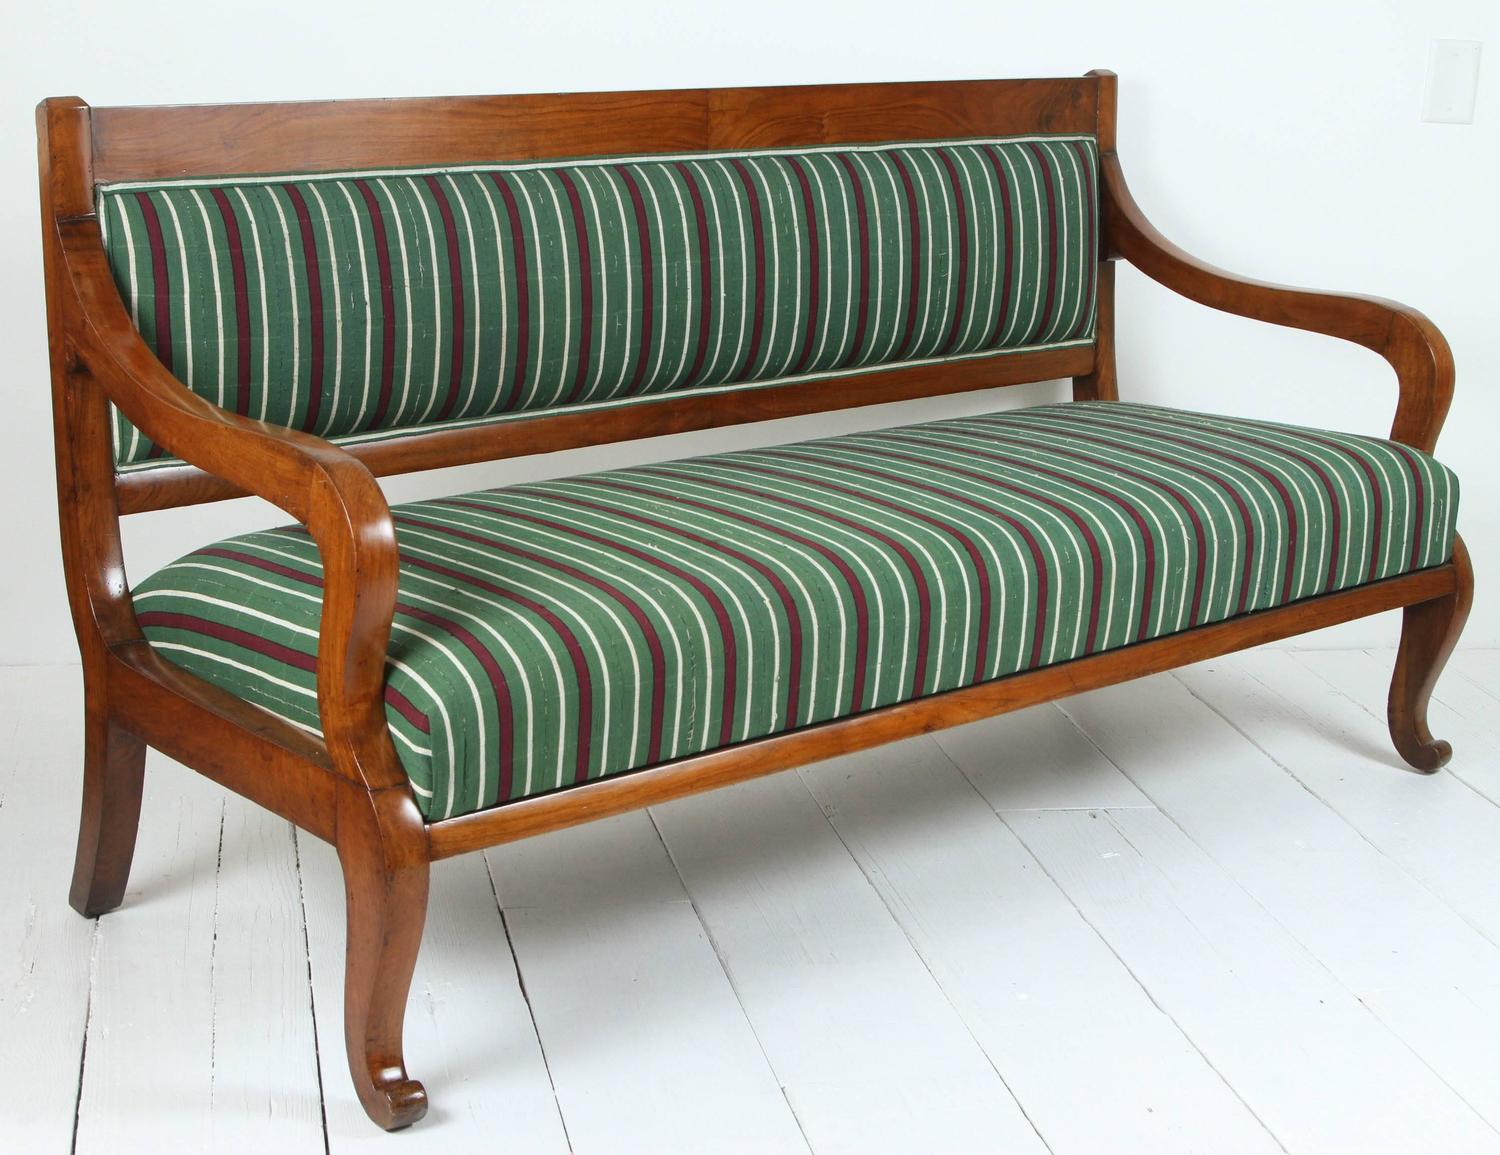 Italian Wood Bench Upholstered In Striped African Fabric For Sale At . Full resolution‎  image, nominally Width 1500 Height 1155 pixels, image with #733B1F.